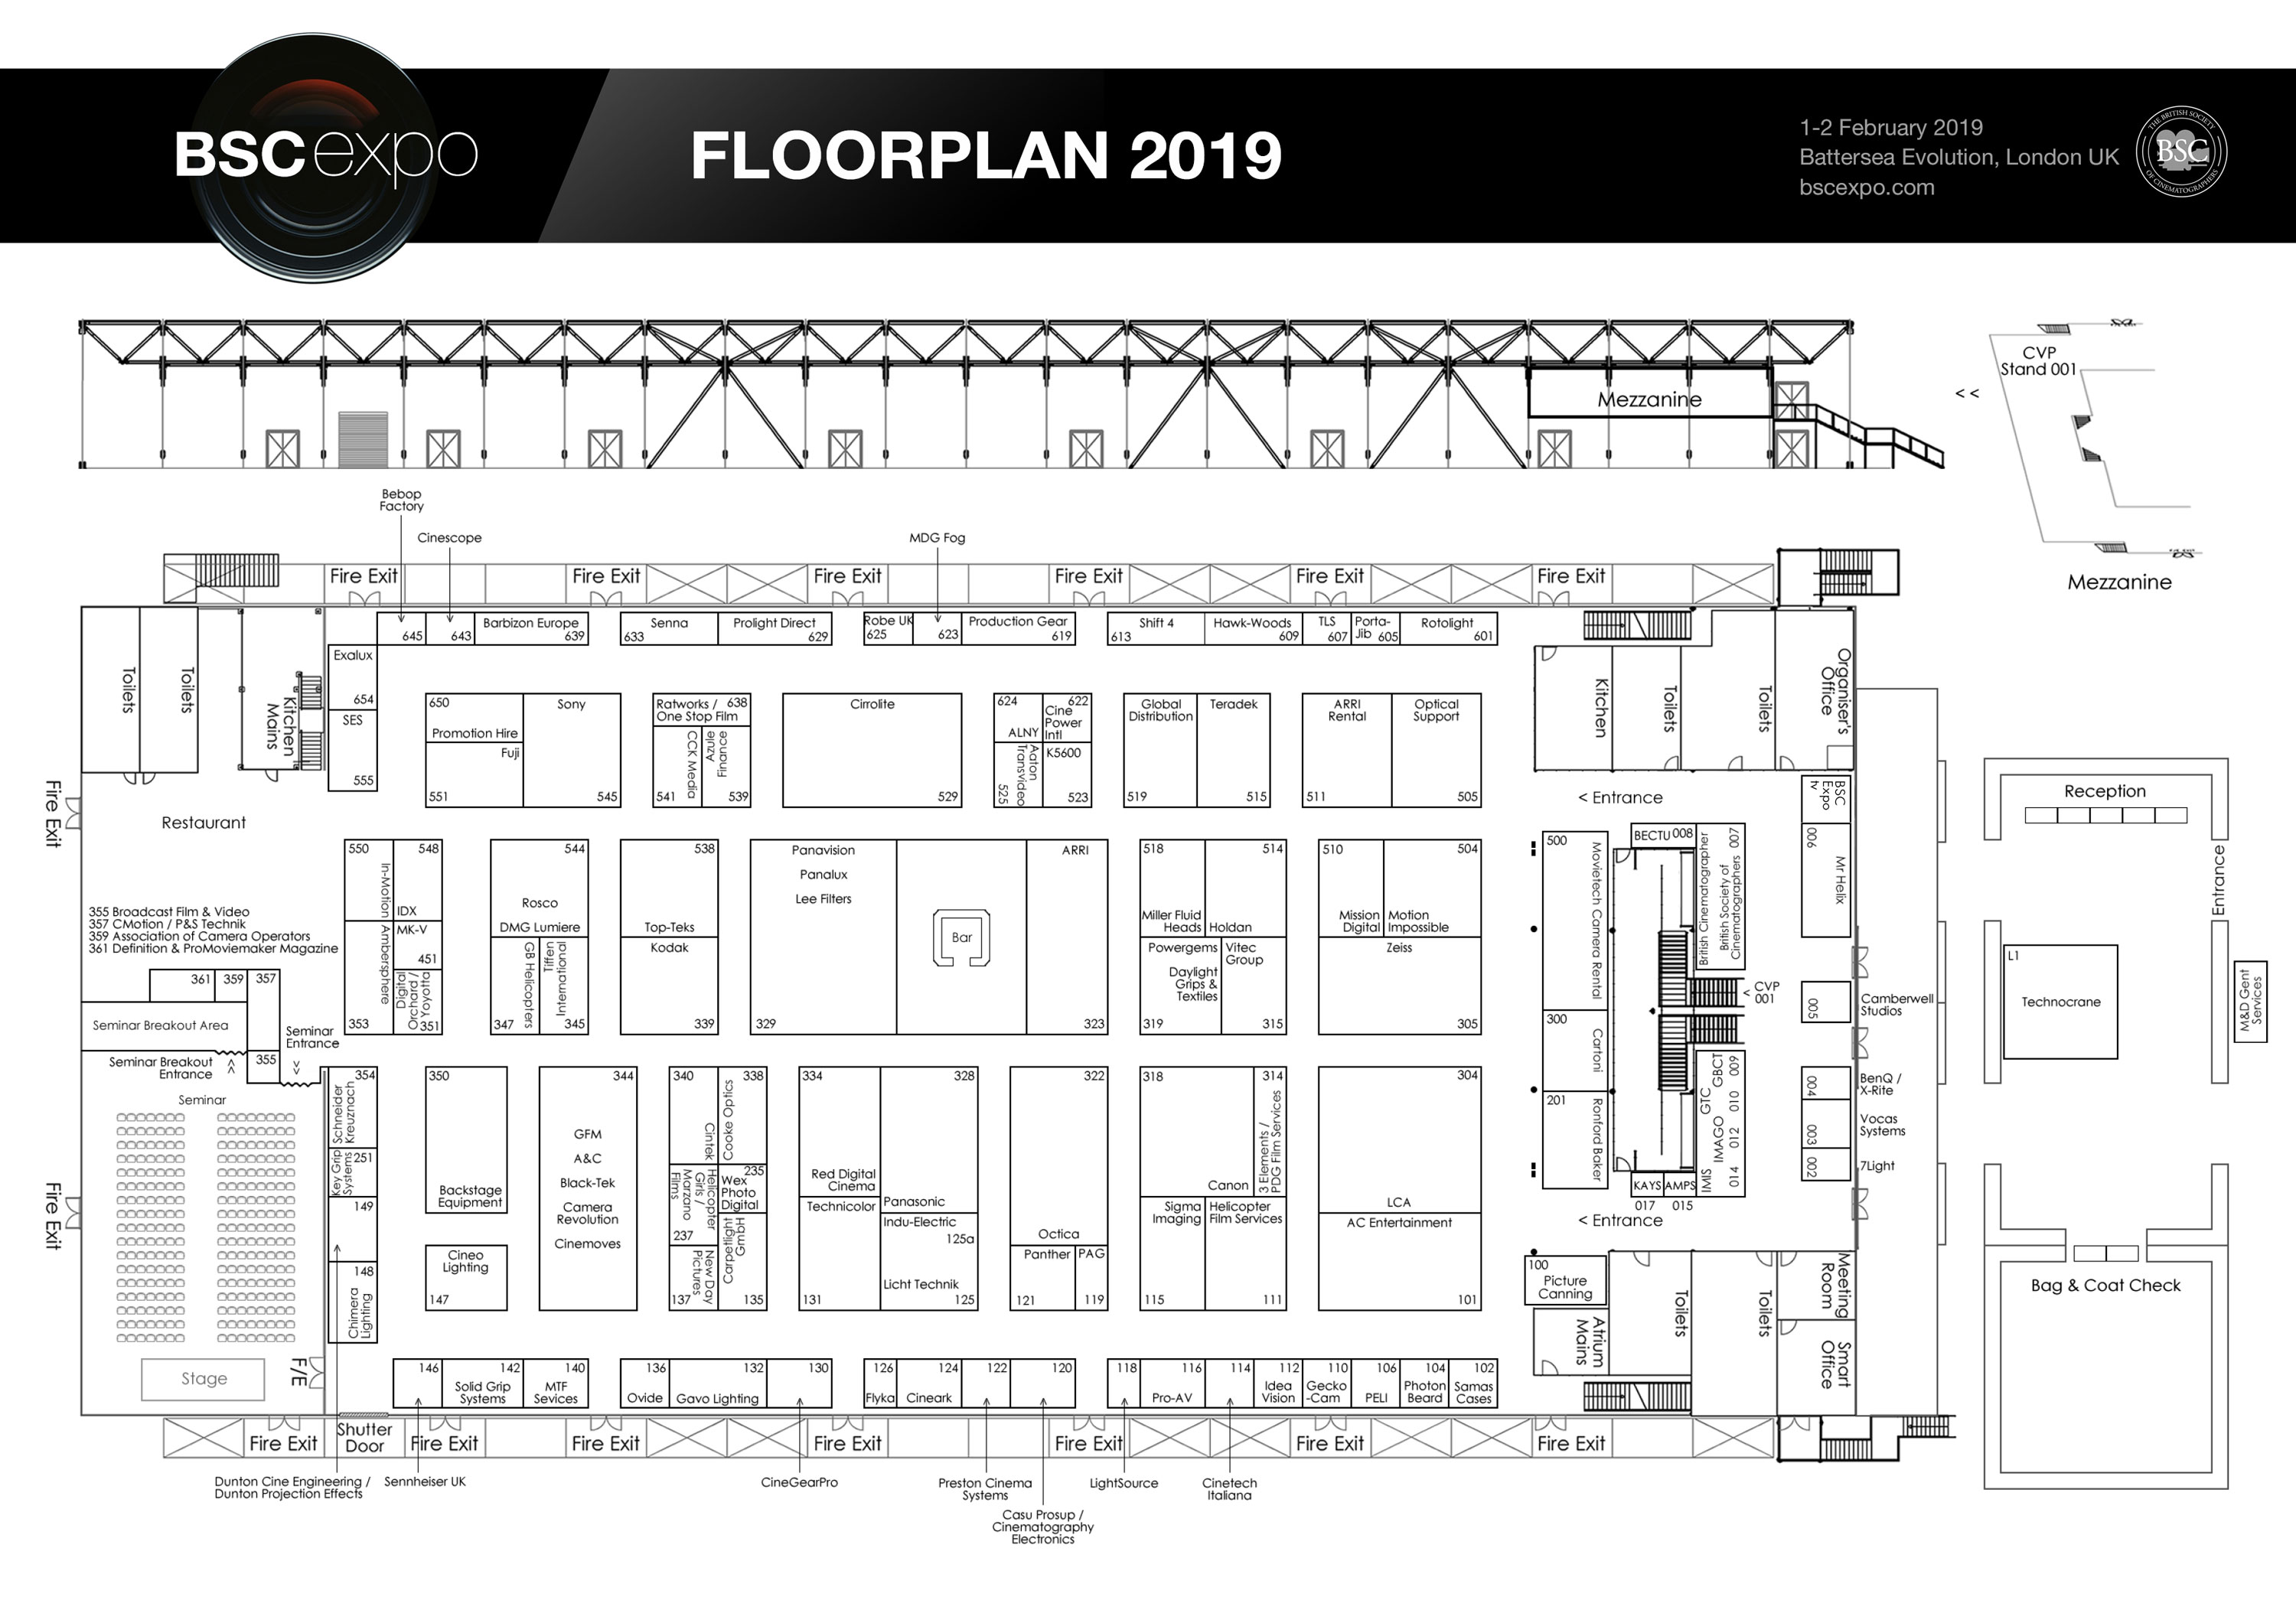 BSC-EXPO-2019-FLOORPLAN Home Floor Plan on home architecture, home bathroom plans, designing home plans, home security plans, house plans, michael daily home plans, garage plans, home roof plans, home building, home plans 1940, home lighting plans, home apartment plans, home furniture, family home plans, energy homes plans, group home plans, home design, 2012 most popular home plans, home hardware plans, country kitchen home plans,